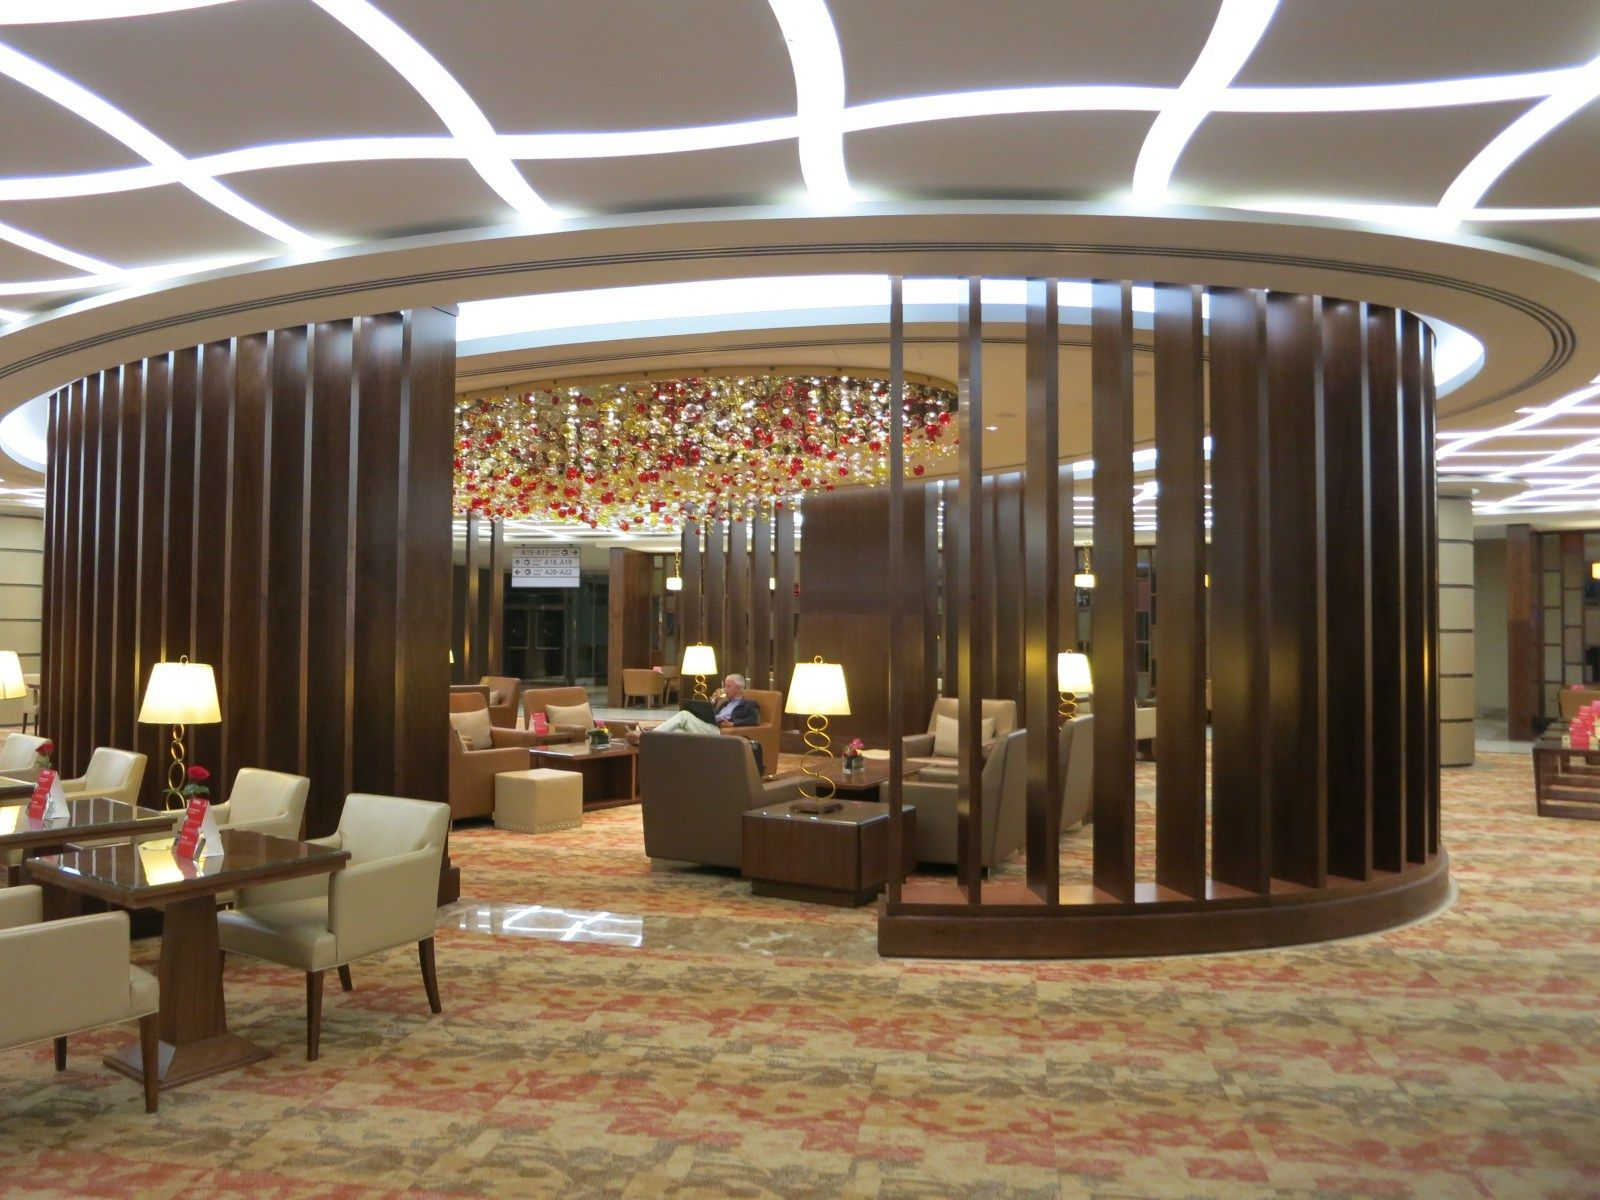 The 10 Best Airport Lounges in the World (With images